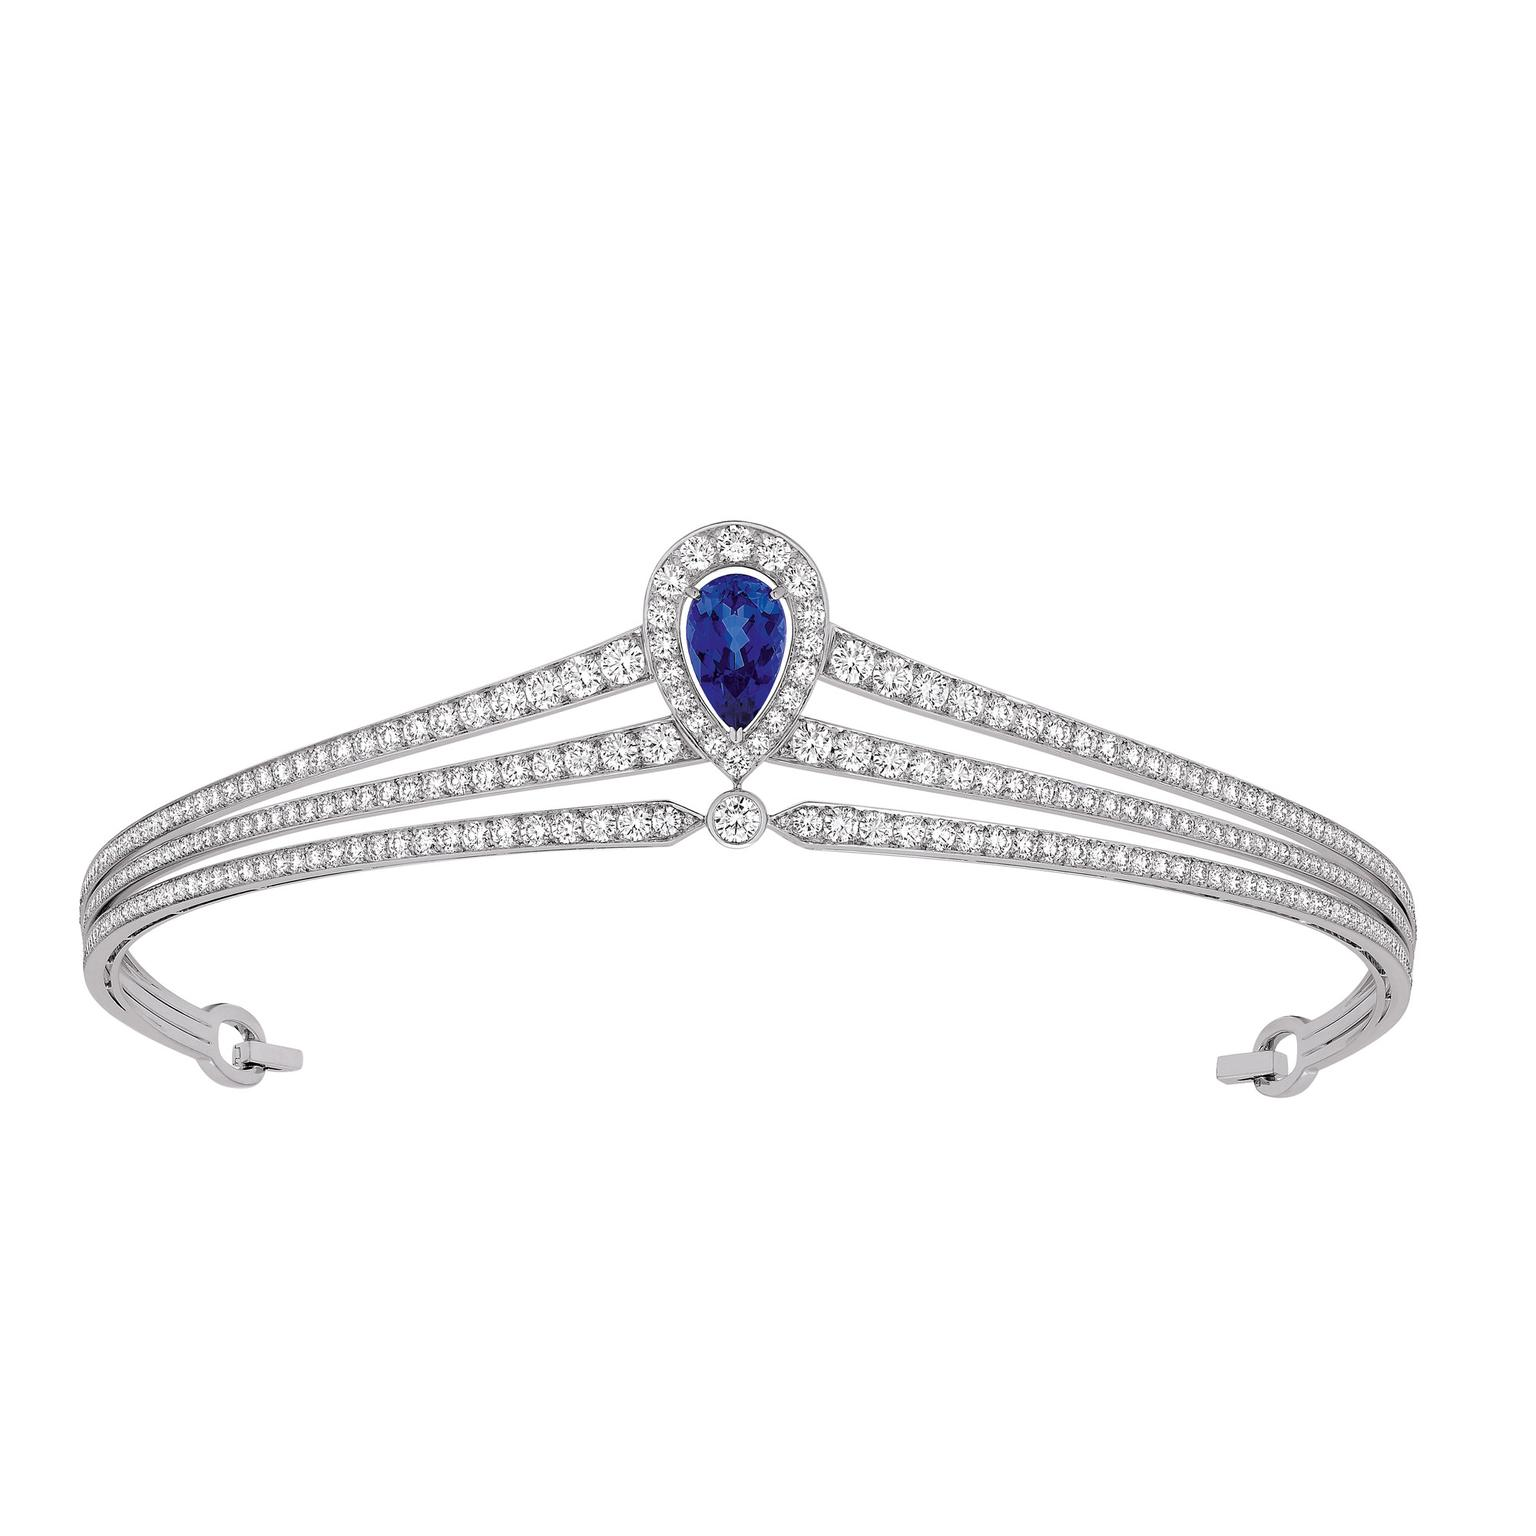 Chaumet Joséphine pear-shaped blue sapphire headband